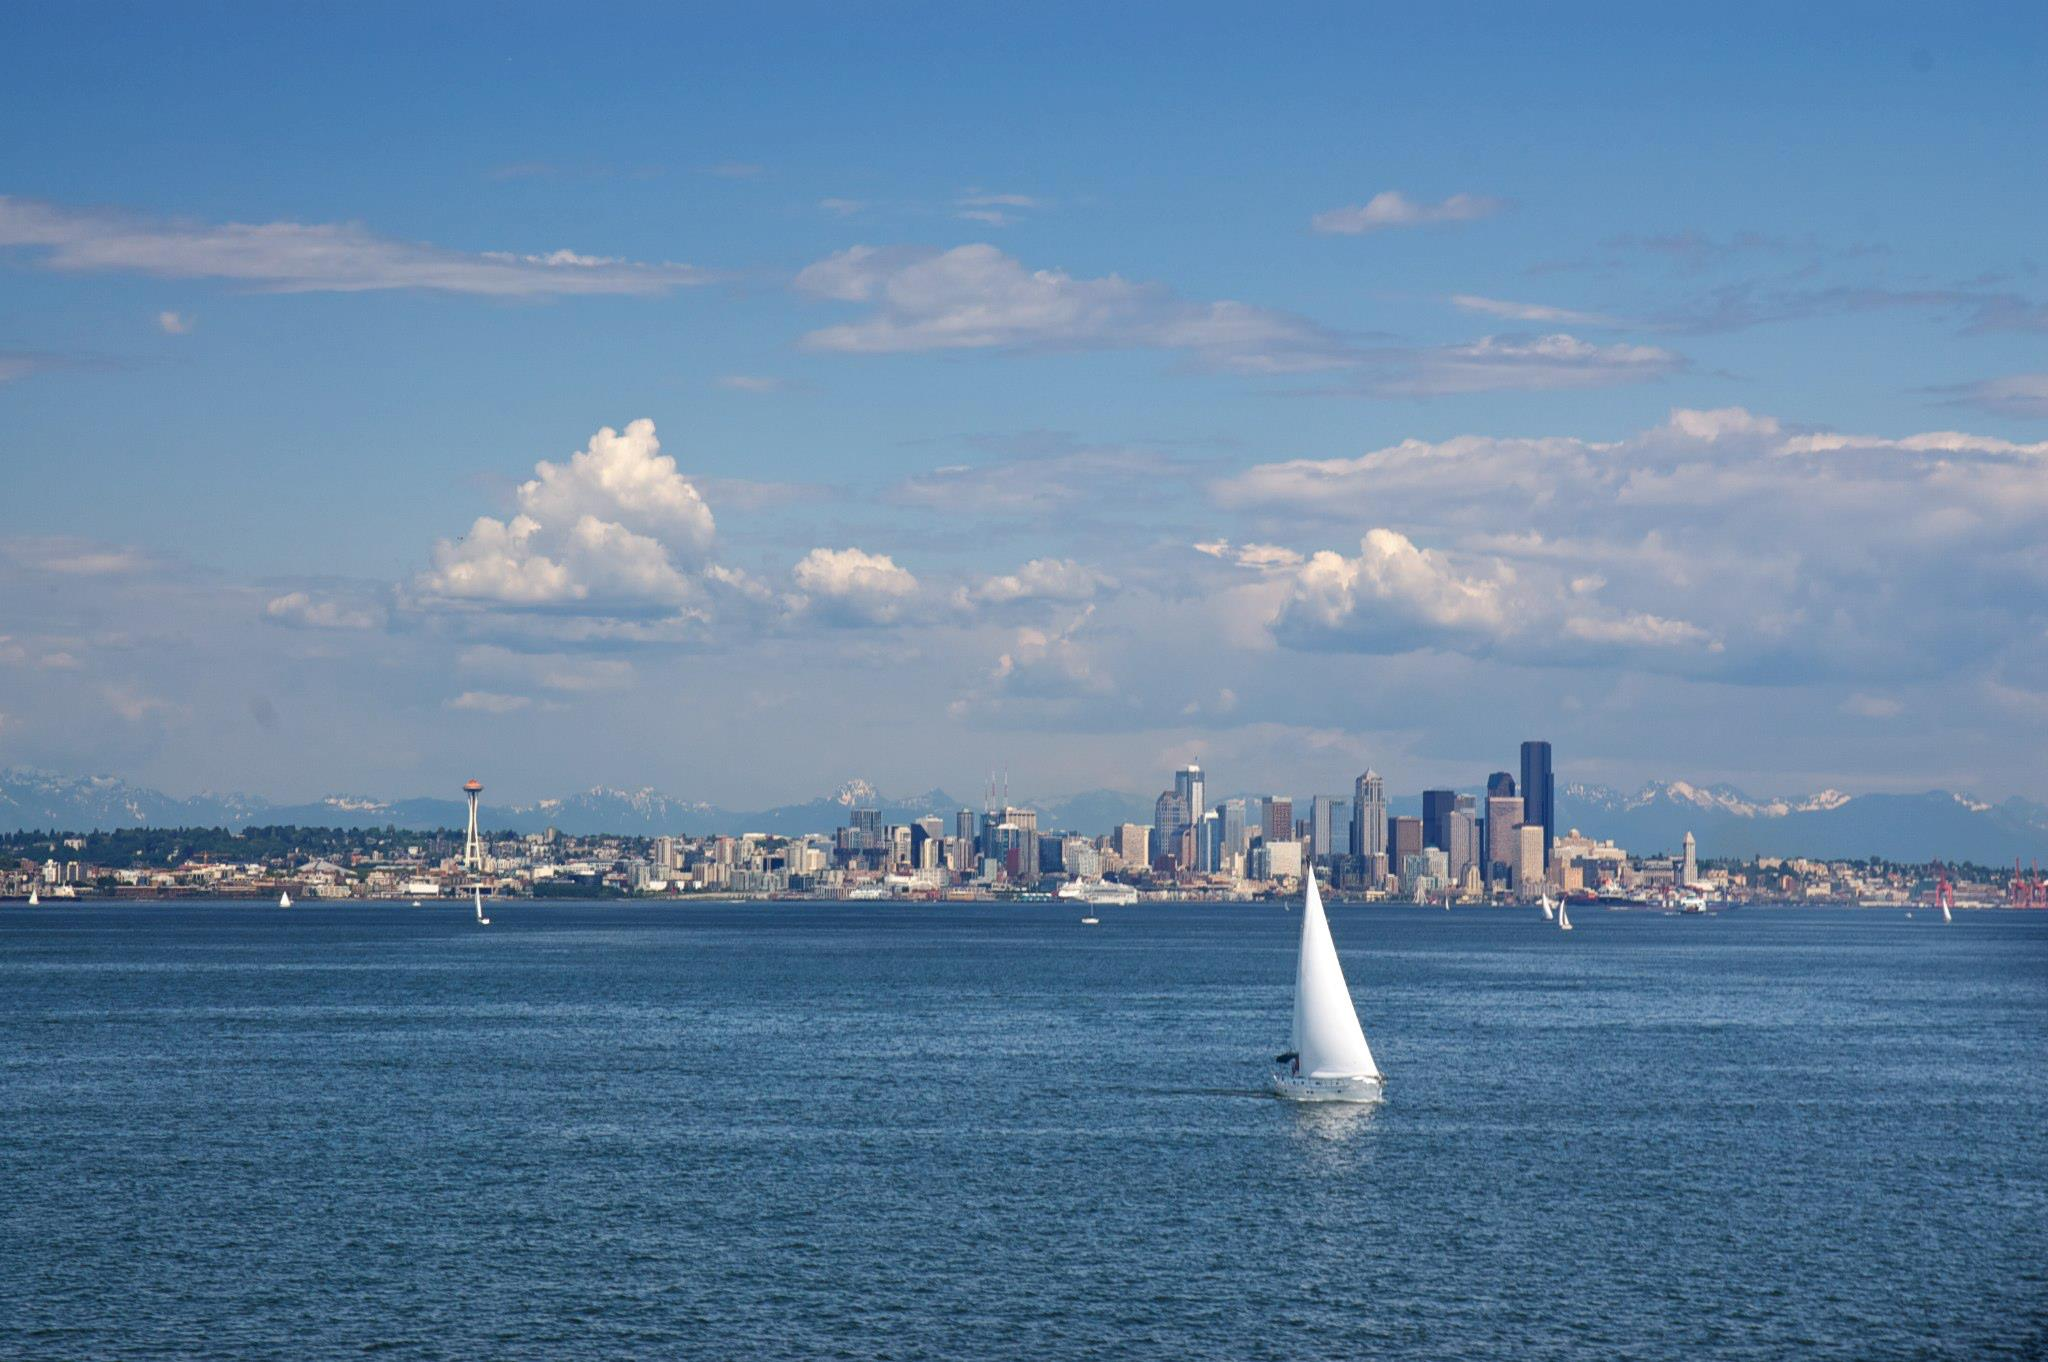 Seattle from the Water - Savannah Page